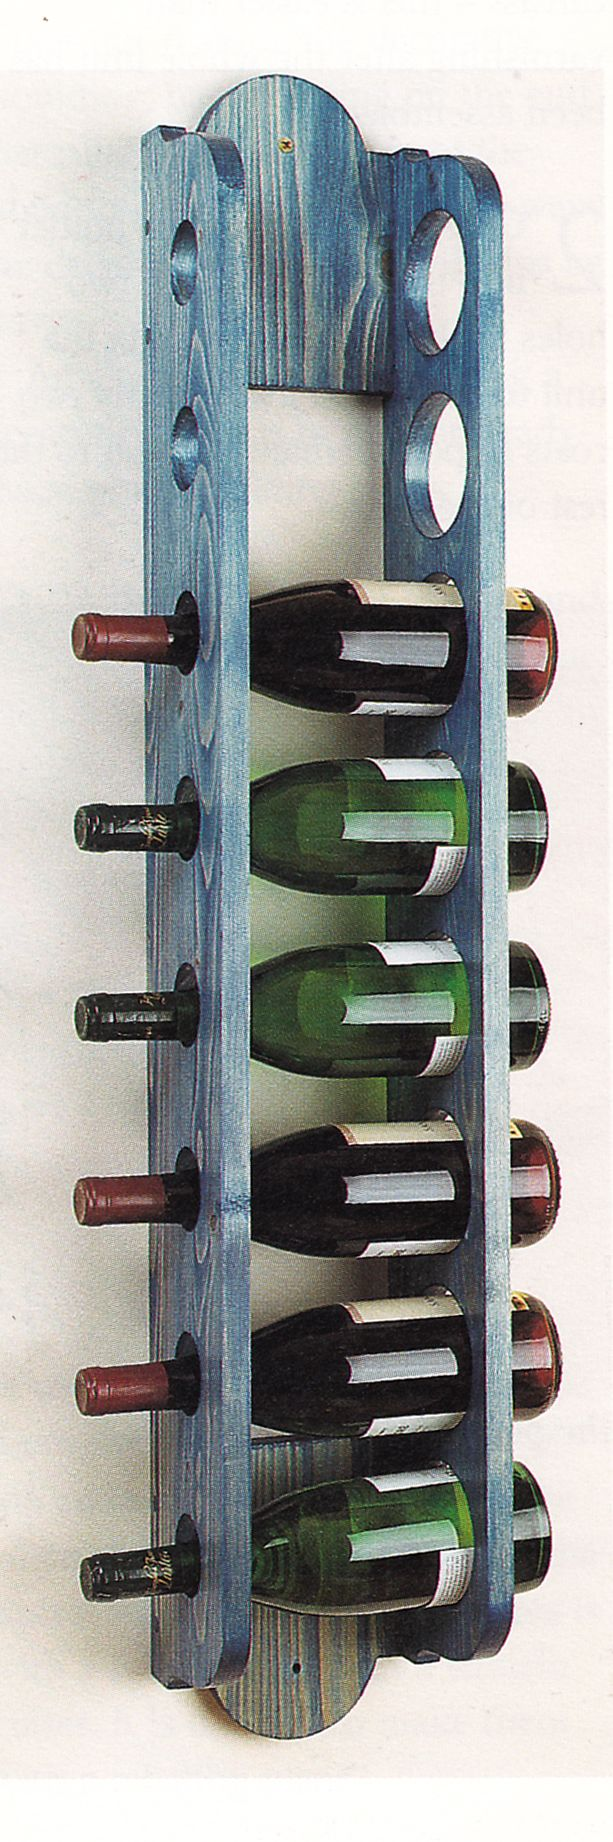 Wine rack design from Space-Saving Furniture Projects for the Home by Dave MacKenzie. If interested, please ask for a free quote on this item. We'd love to build it for you.